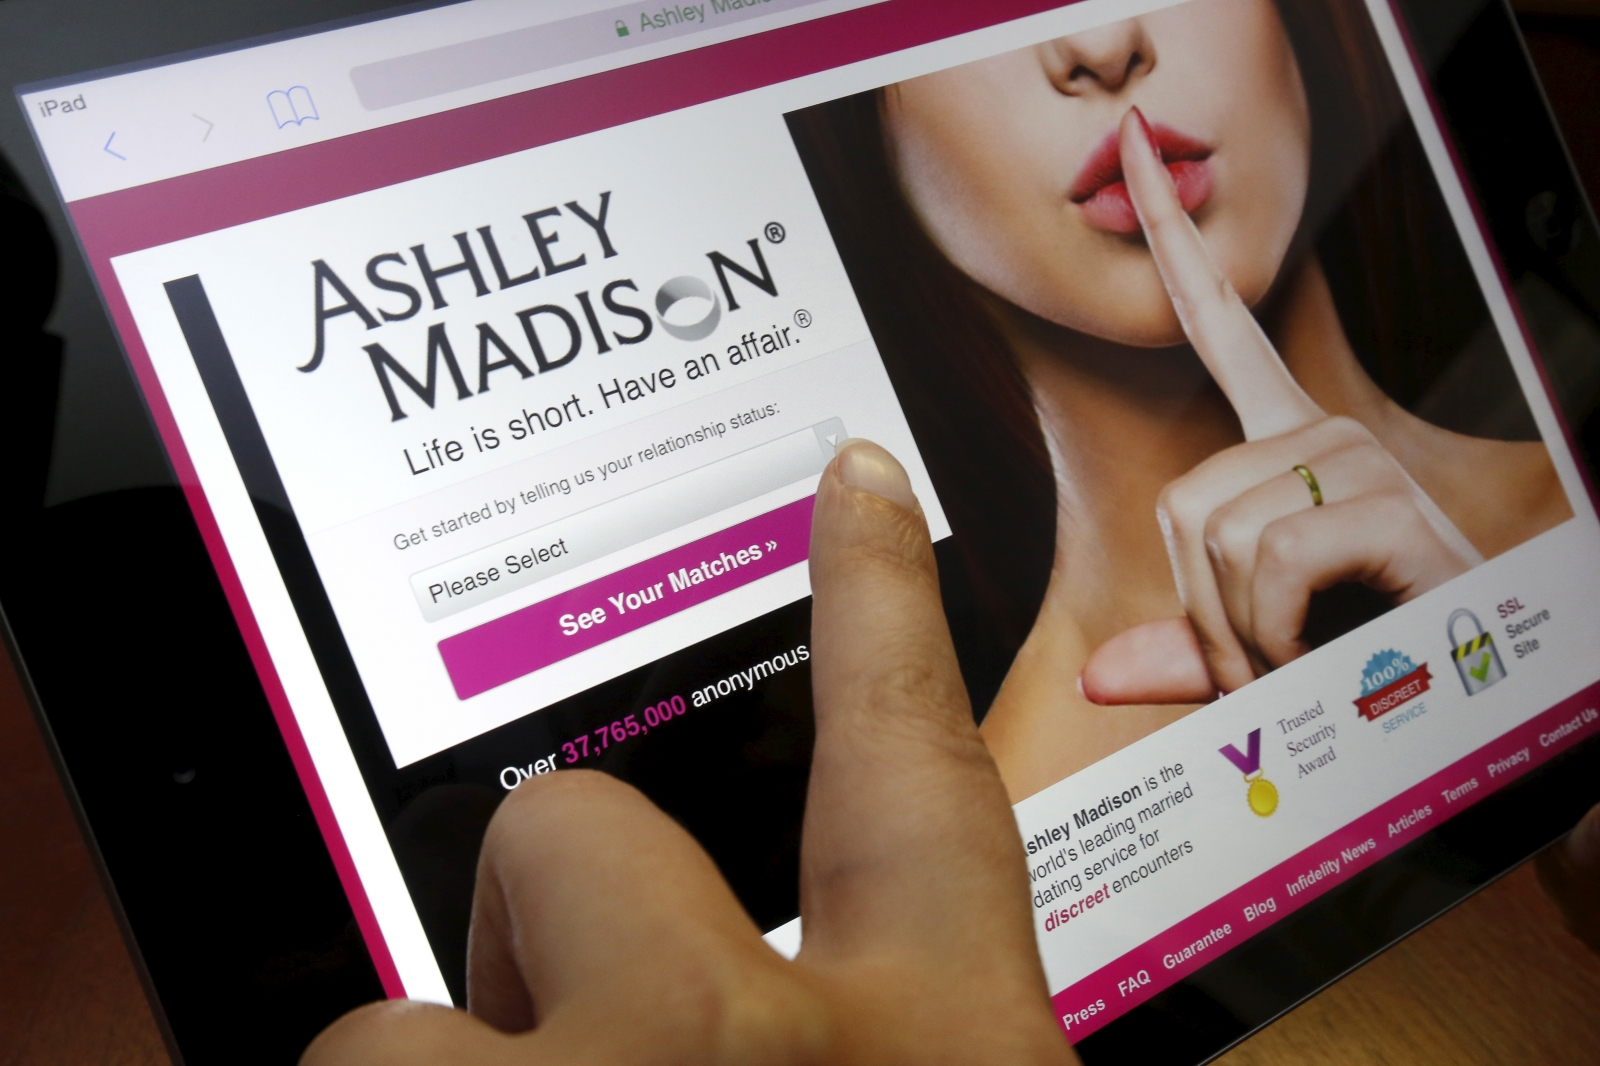 check email ashley madison